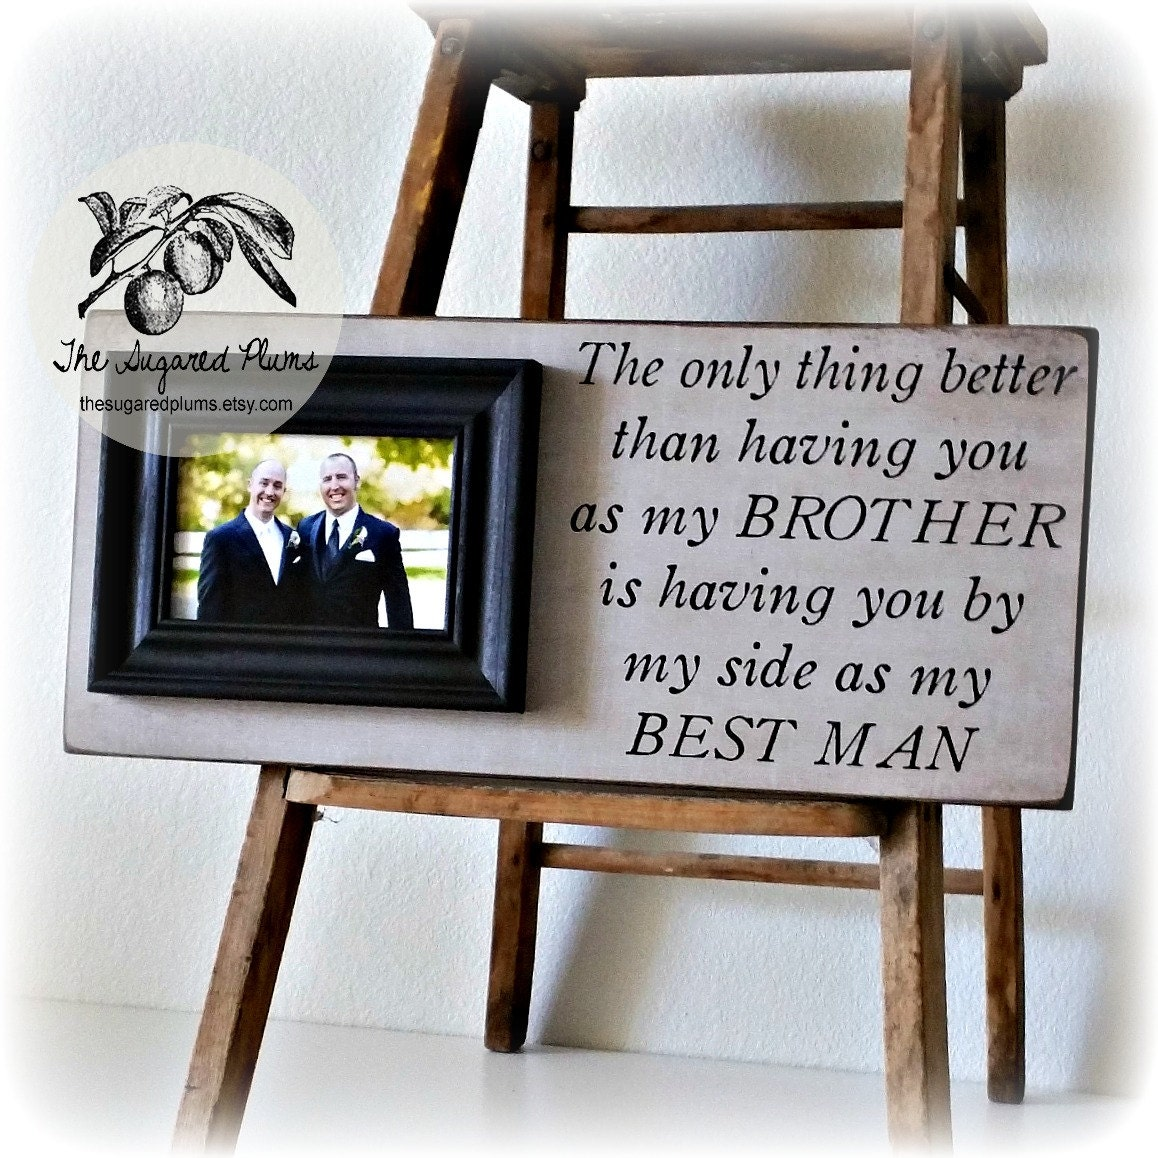 Special Wedding Gift For Brother : Ideas. Wedding Gifts For Best Man. skinnycargopantsaddict wedding and ...